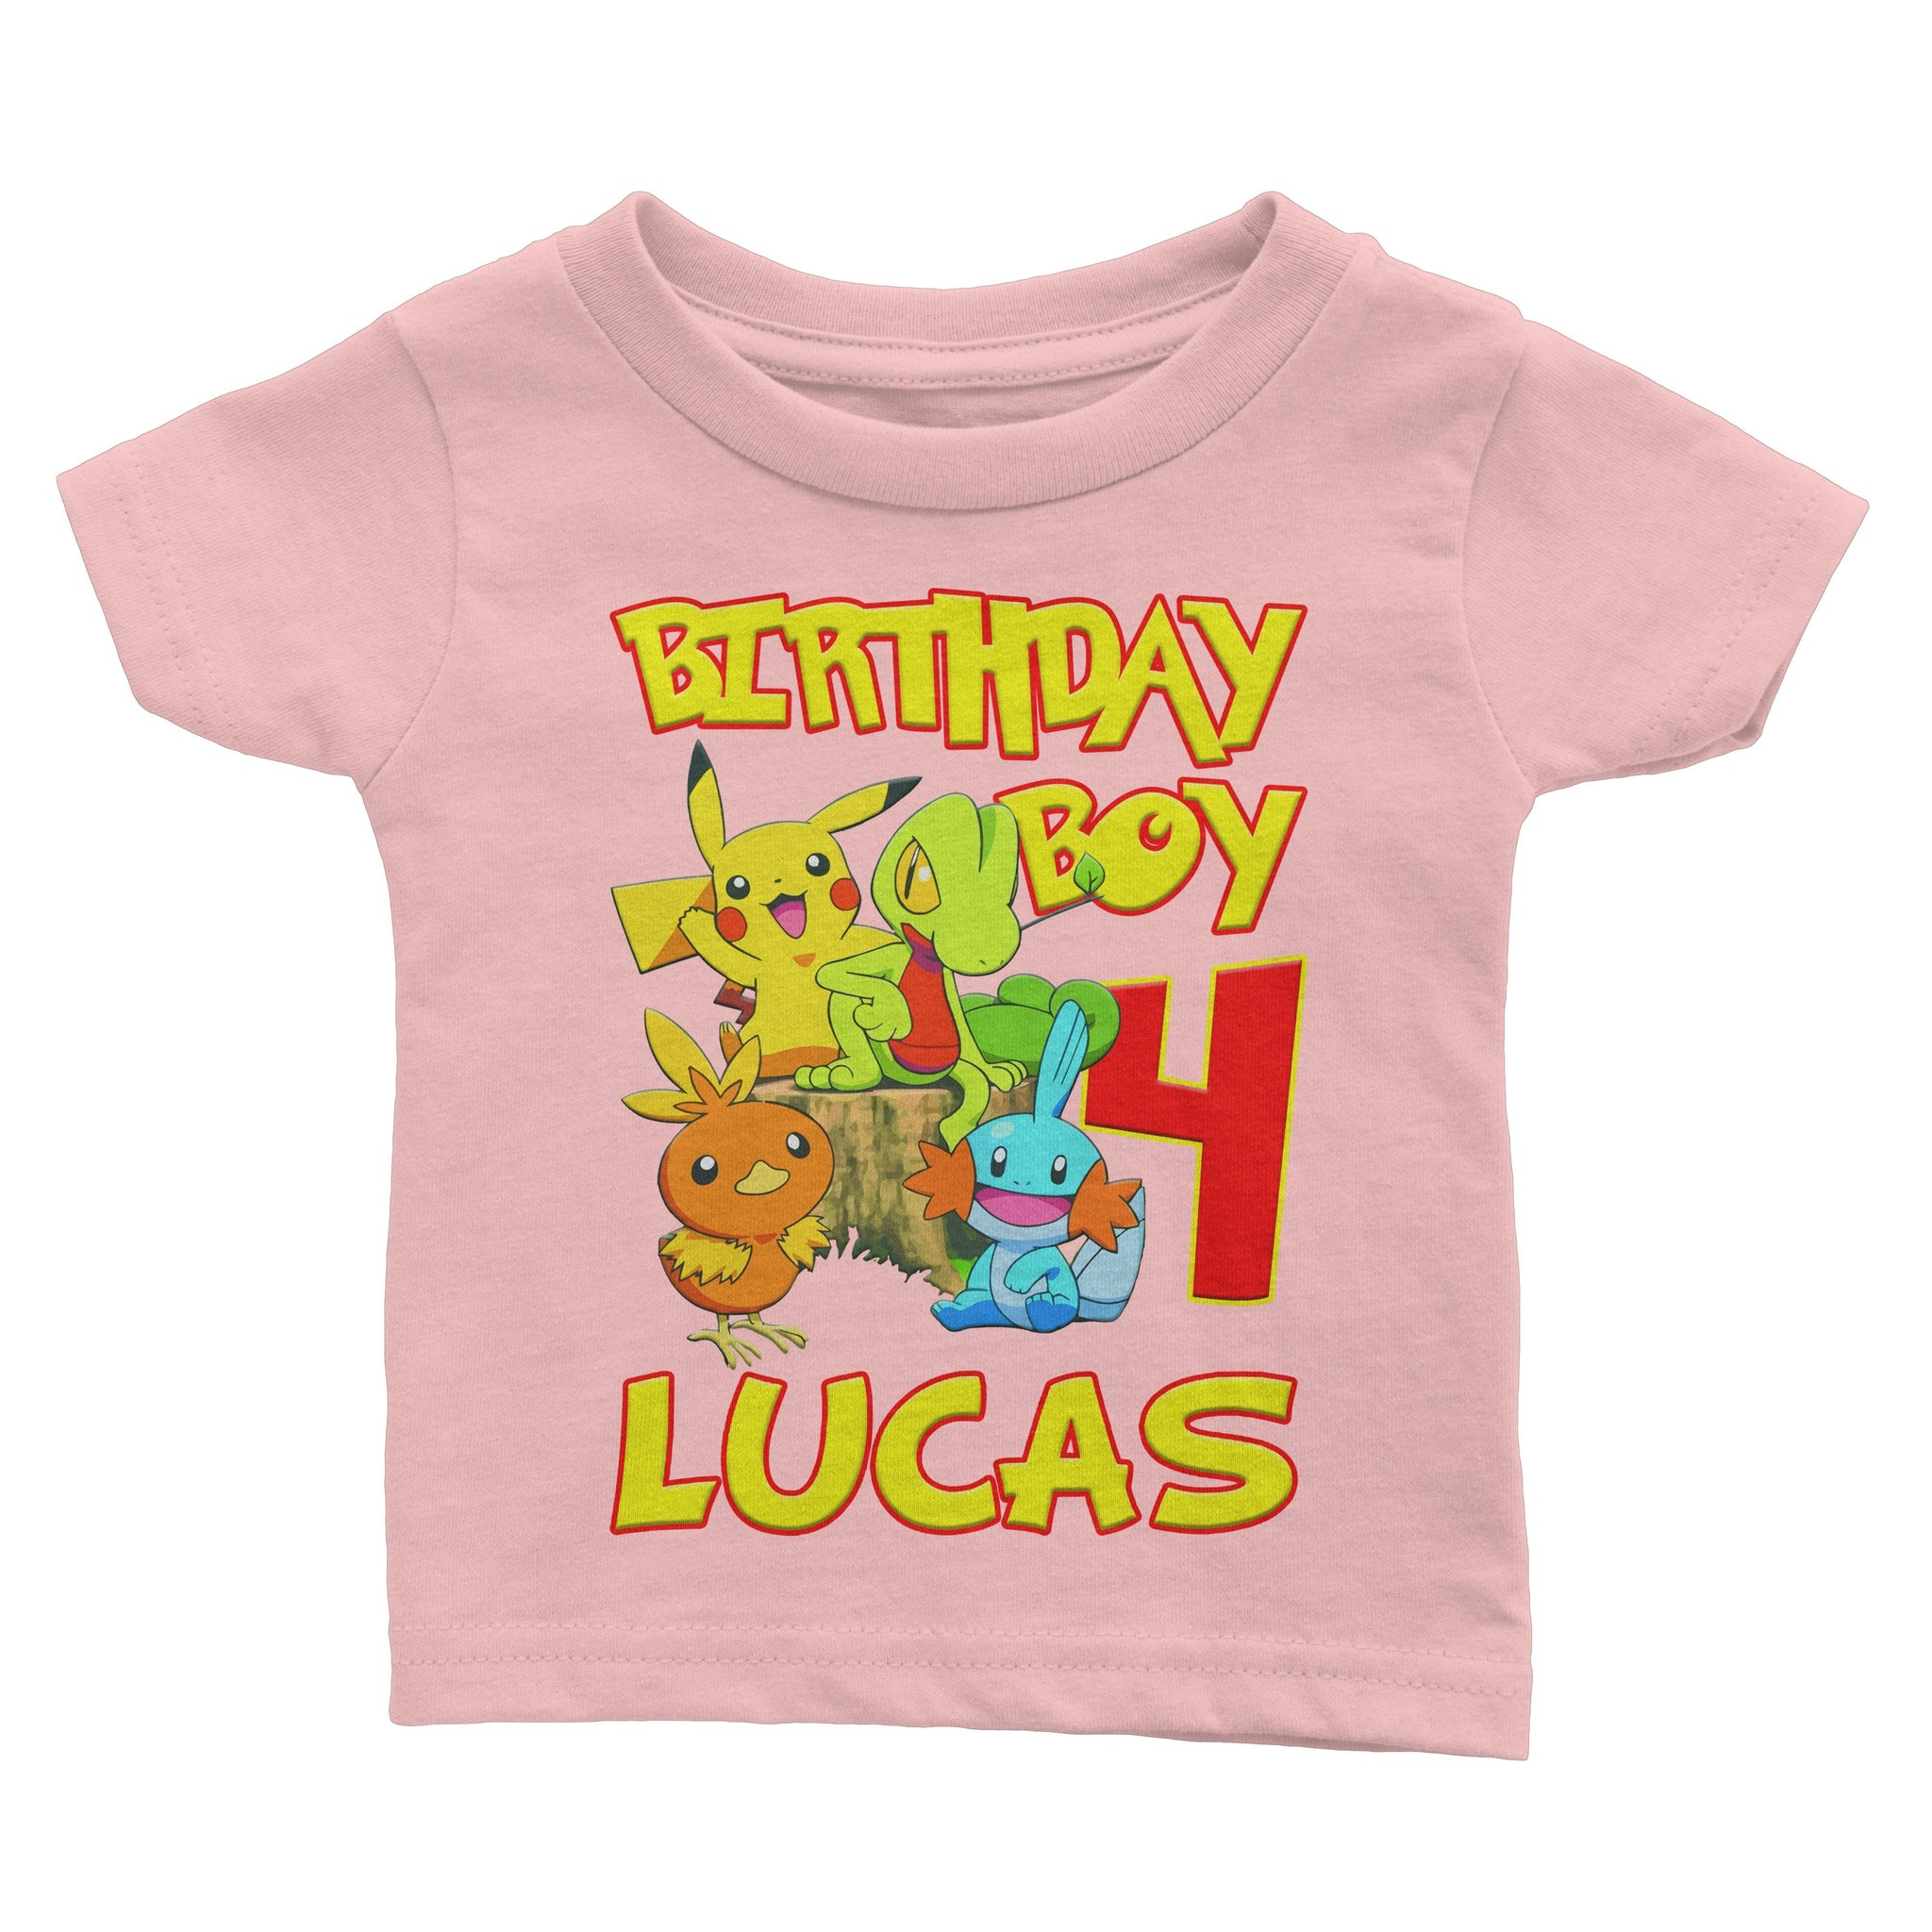 a6c94e269 ... Load image into Gallery viewer, Personalize Pokemon Birthday Shirt ...